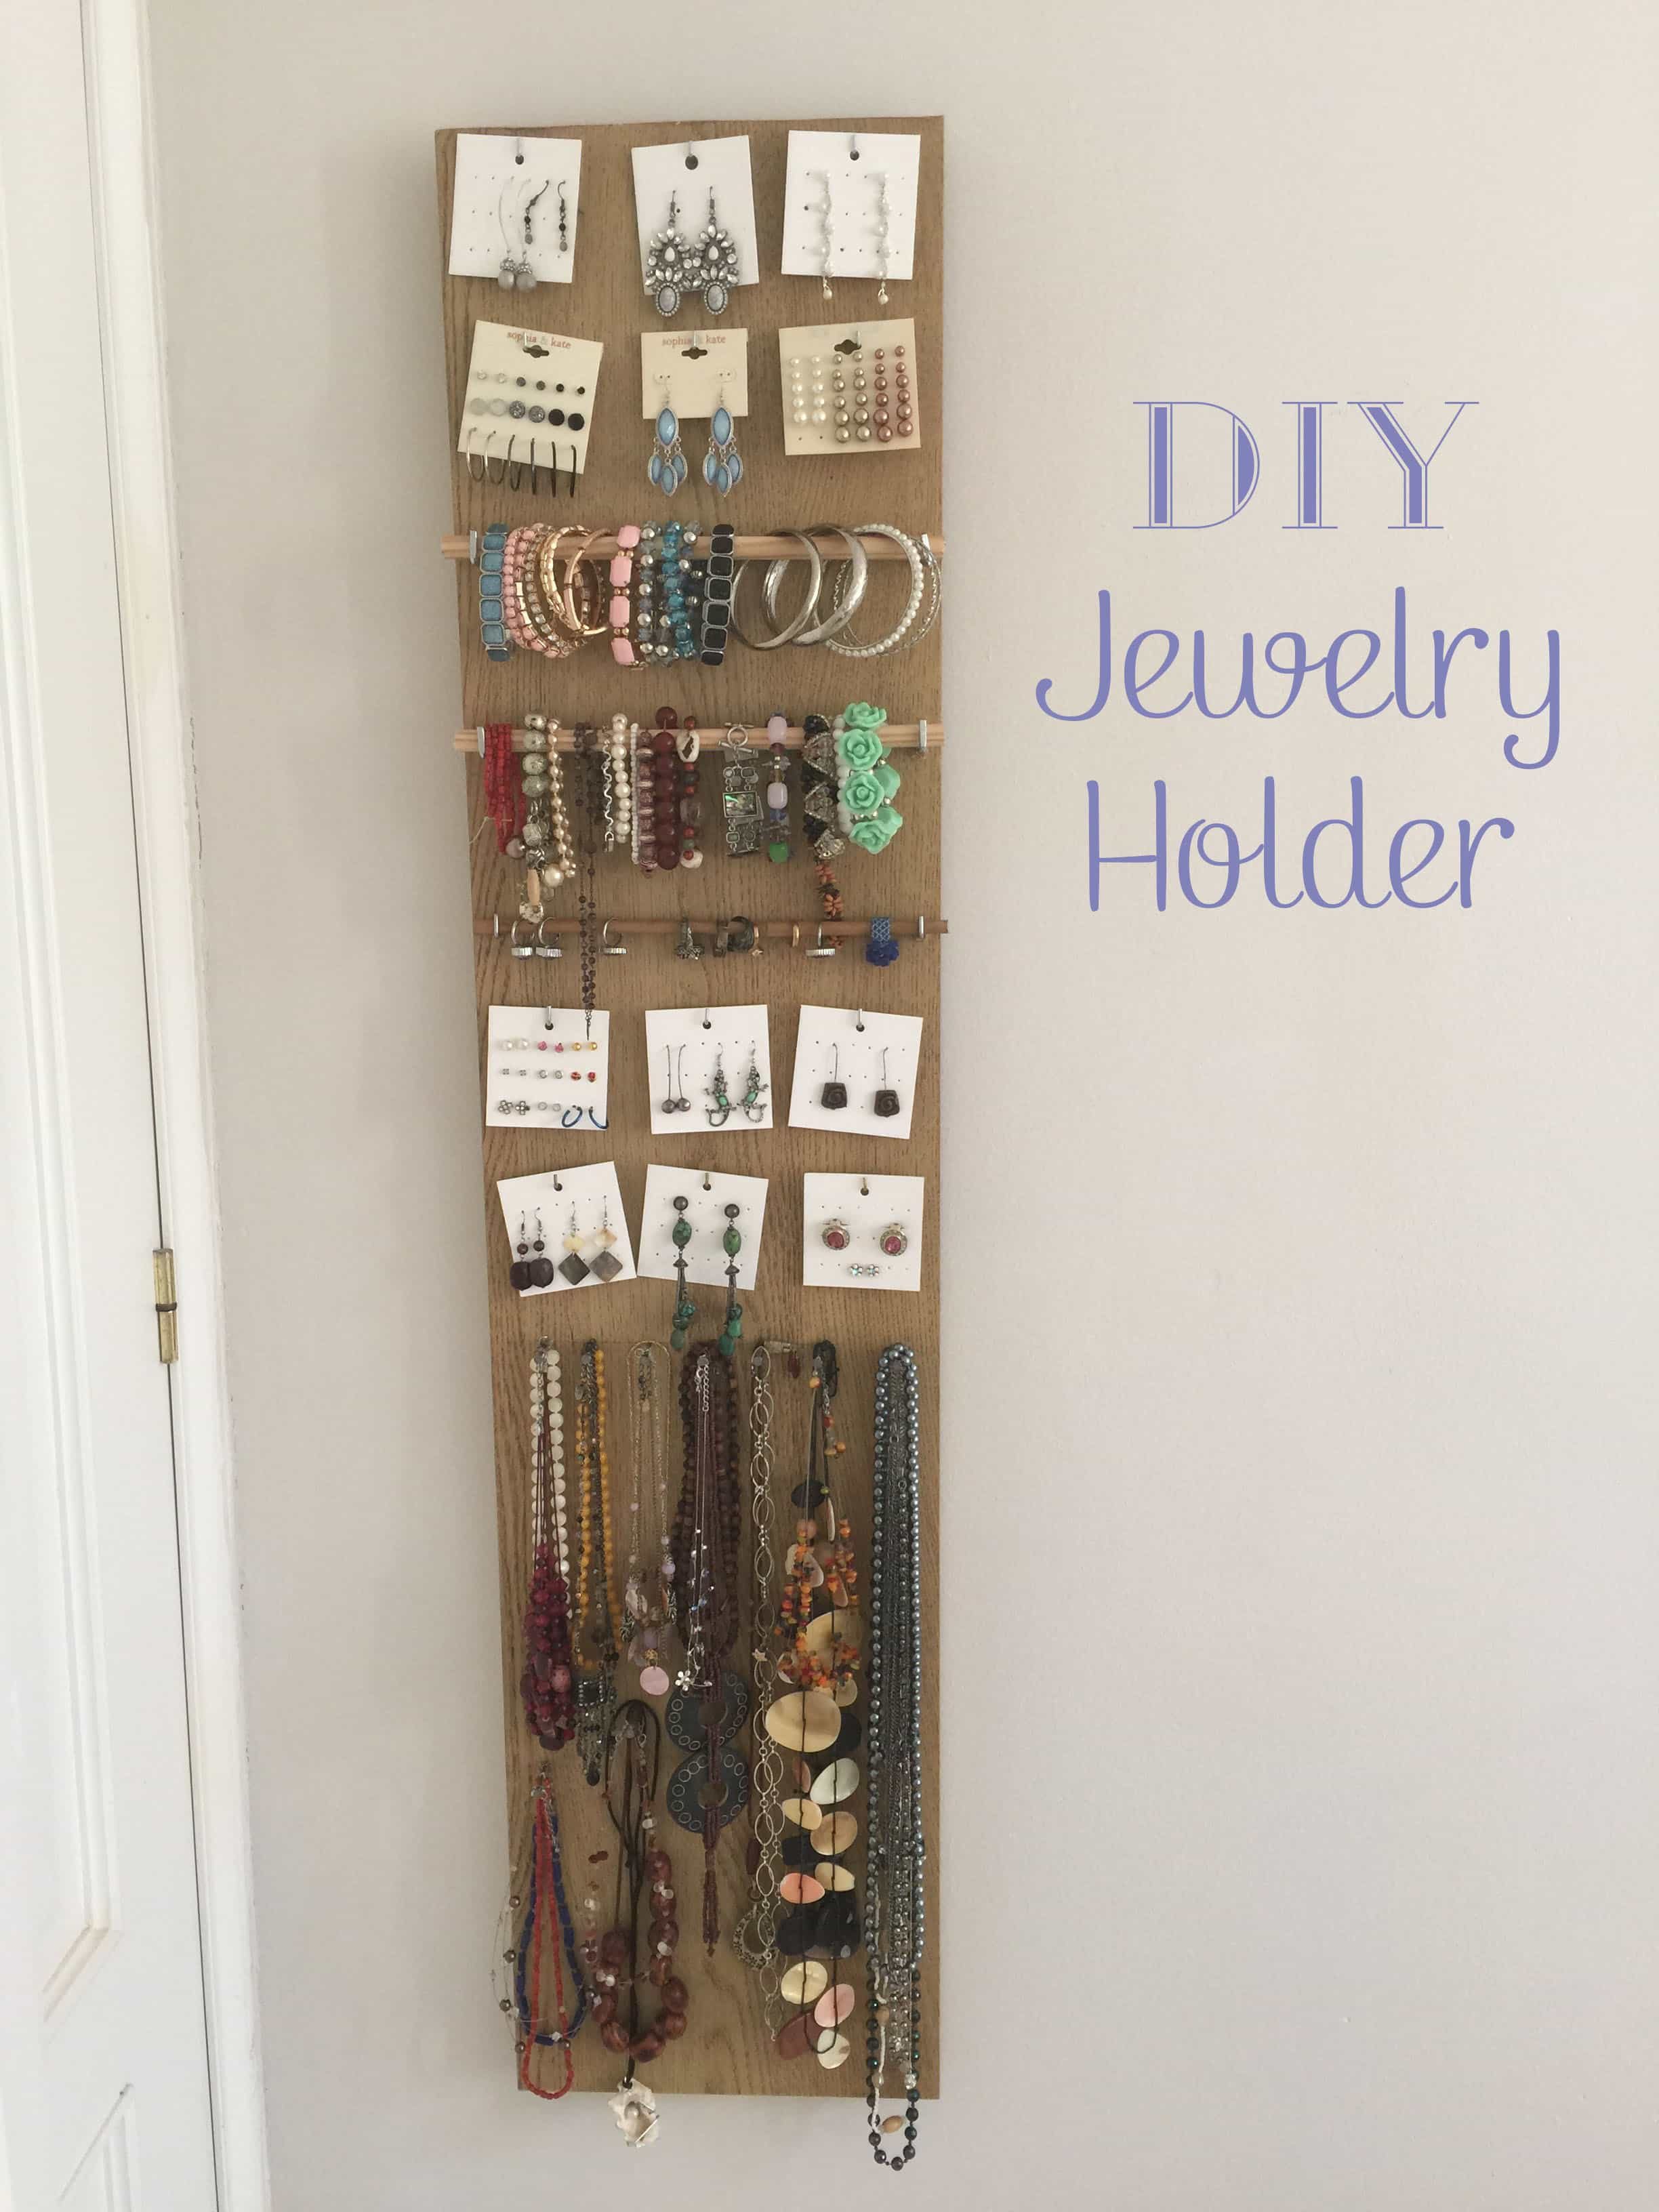 Love Jewelry? Make your own DIY Jewelry Holder to fit your needs.